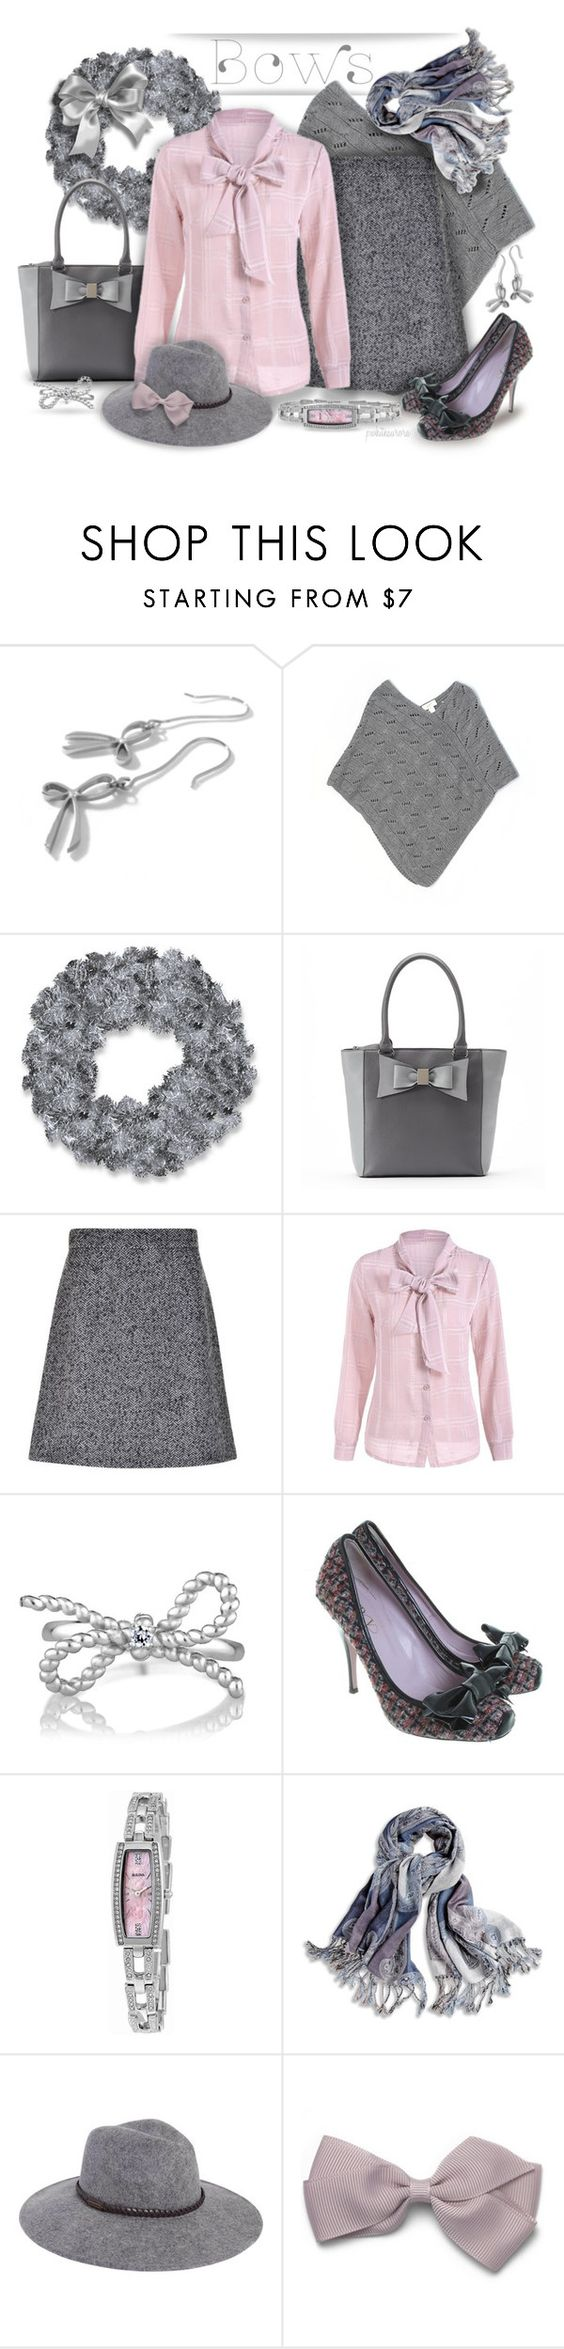 """""""Bows!!!"""" by pwhiteaurora ❤ liked on Polyvore featuring Trilogy, Kamsmak, LOFT, National Tree Company, Apt. 9, Dolce&Gabbana, RED Valentino, Bulova, Chico's and Billabong"""